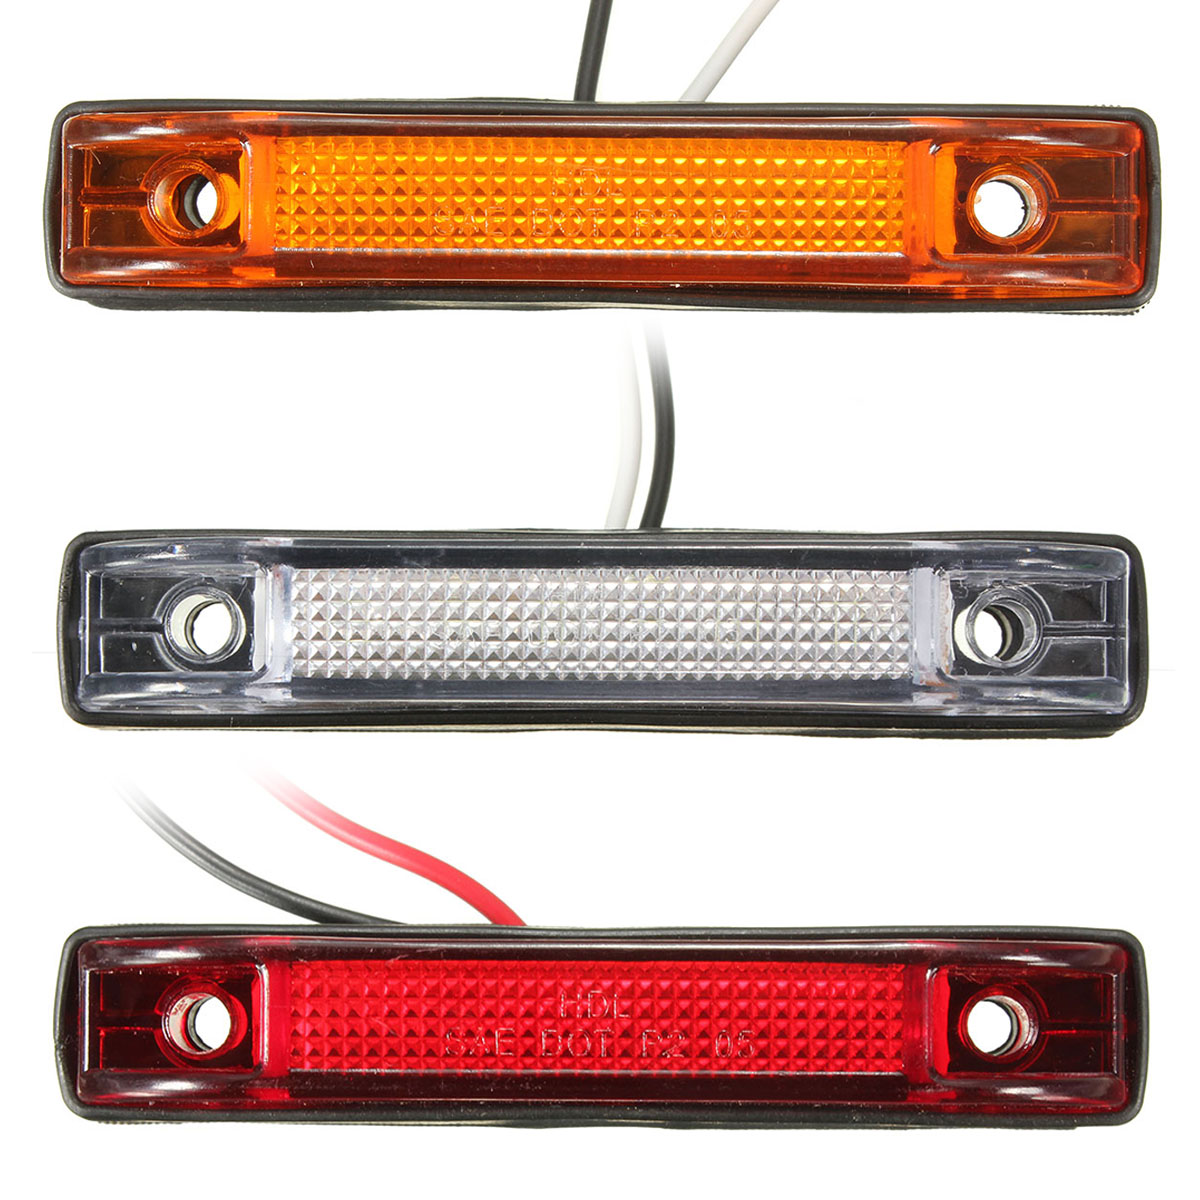 6 LED Utility  LED Car Truck Side Marker Clearance Light Lamp White Yellow Red Truck Trailer Lorry Stop Rear Lamp Side Light